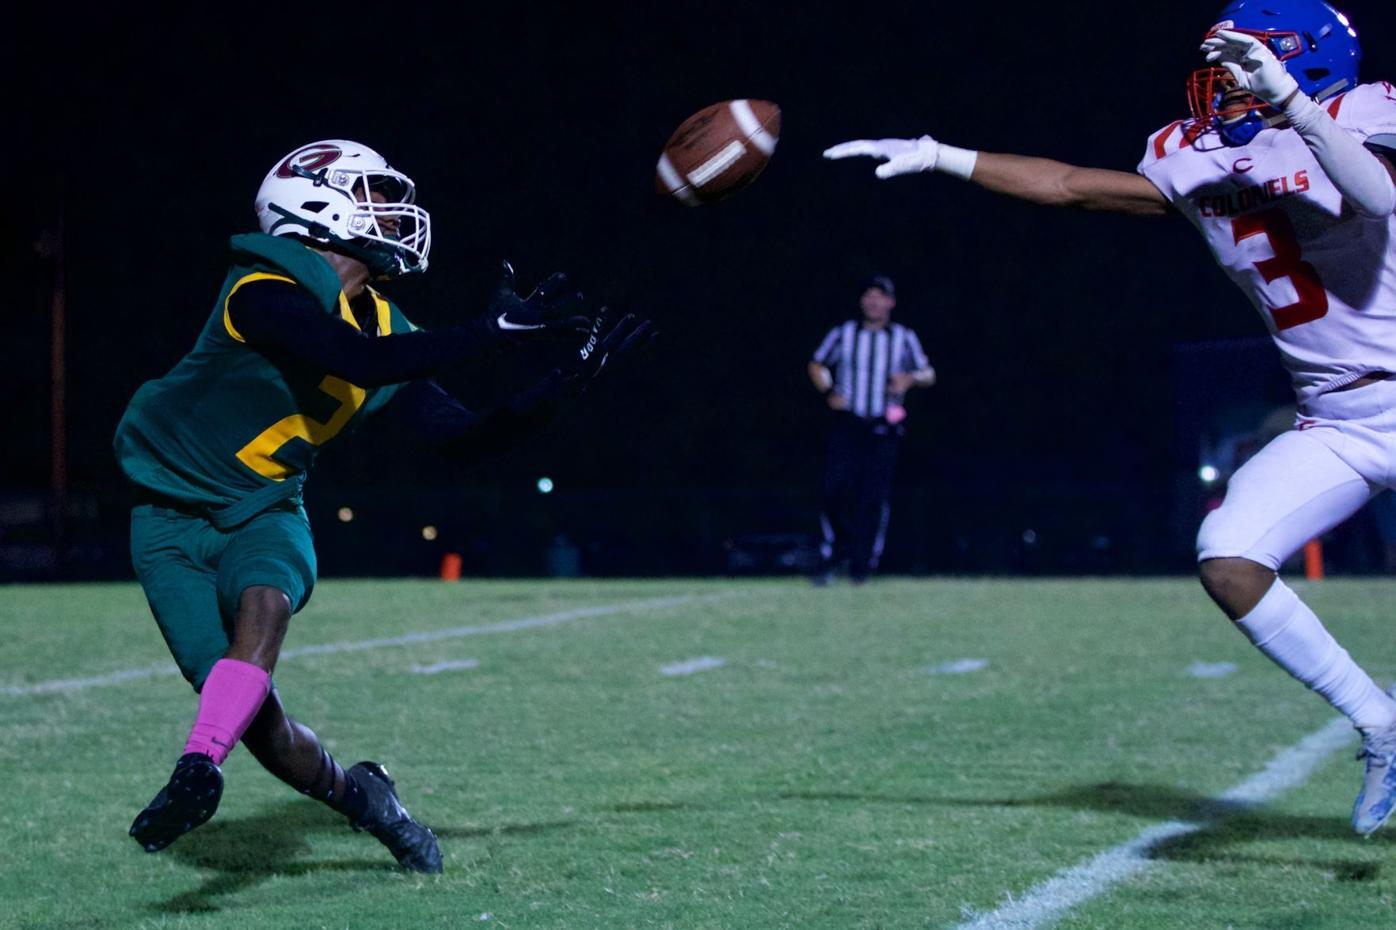 211001-sports-Christian County football at GW _outbound 4.jpg